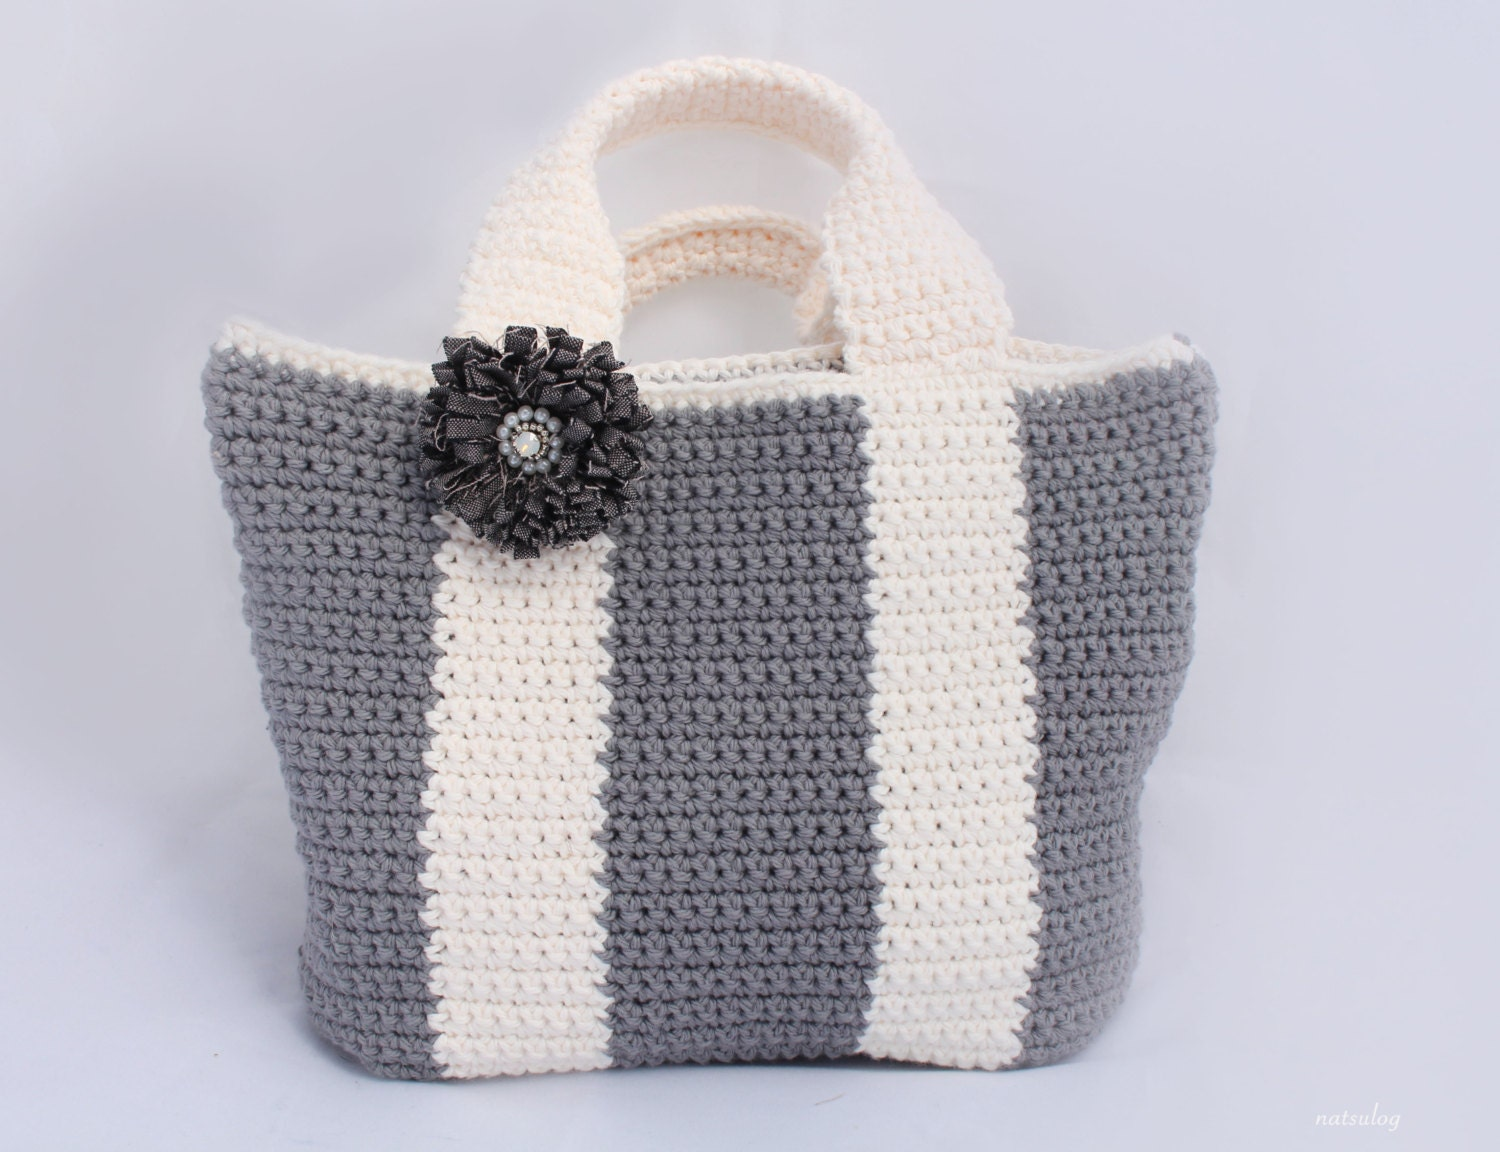 Crochet Small Tote Bag Pattern : Crochet simple tote bag pattern Bicolor bag Crochet purse